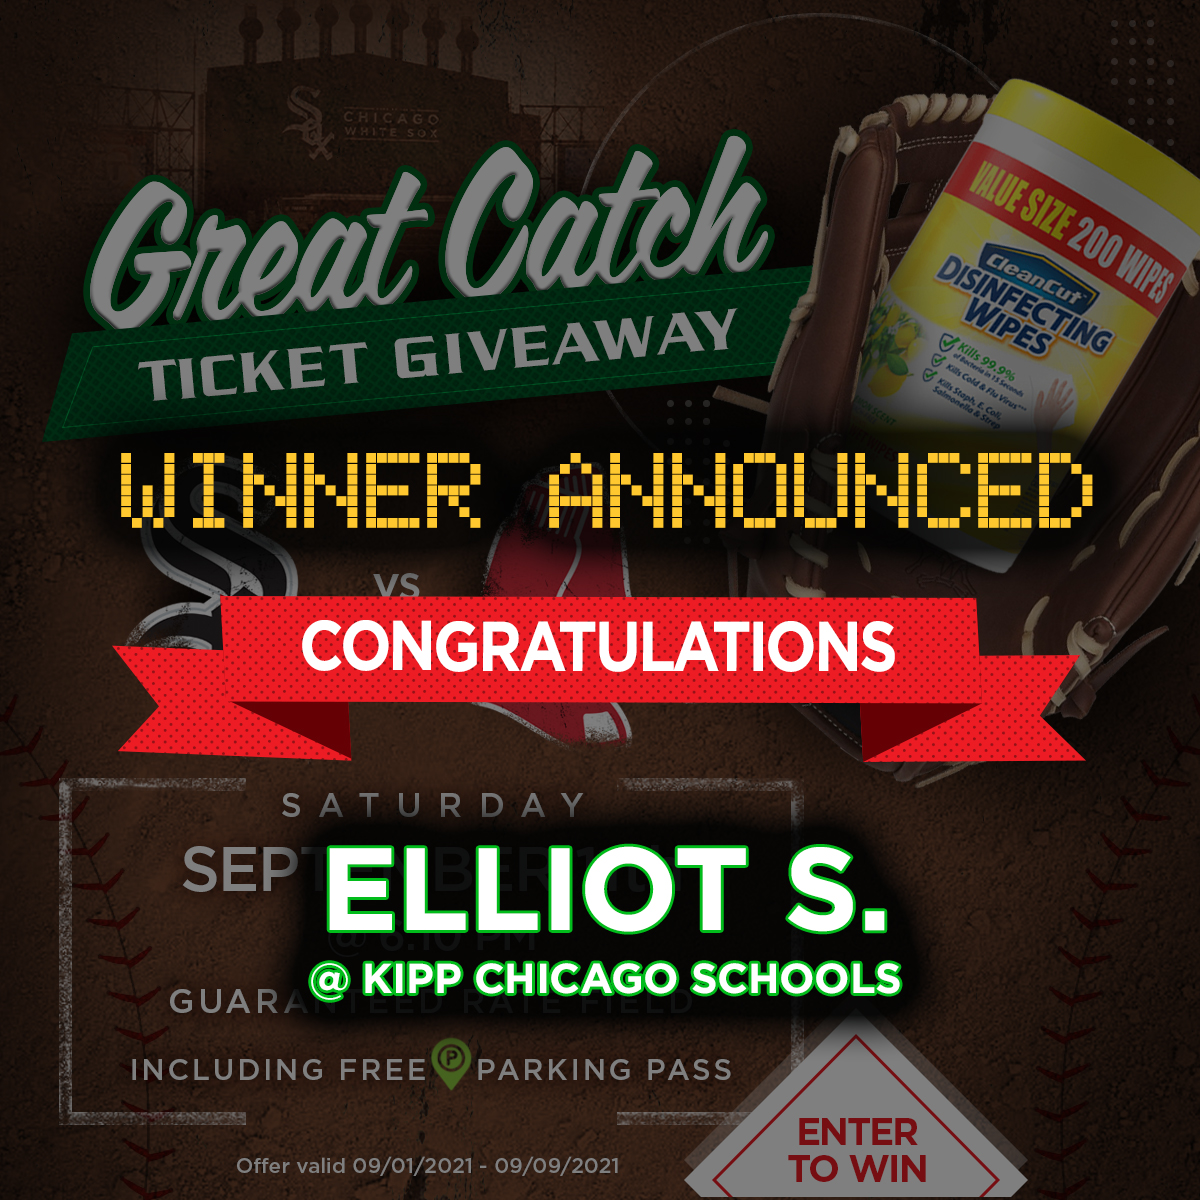 great catch giveaway